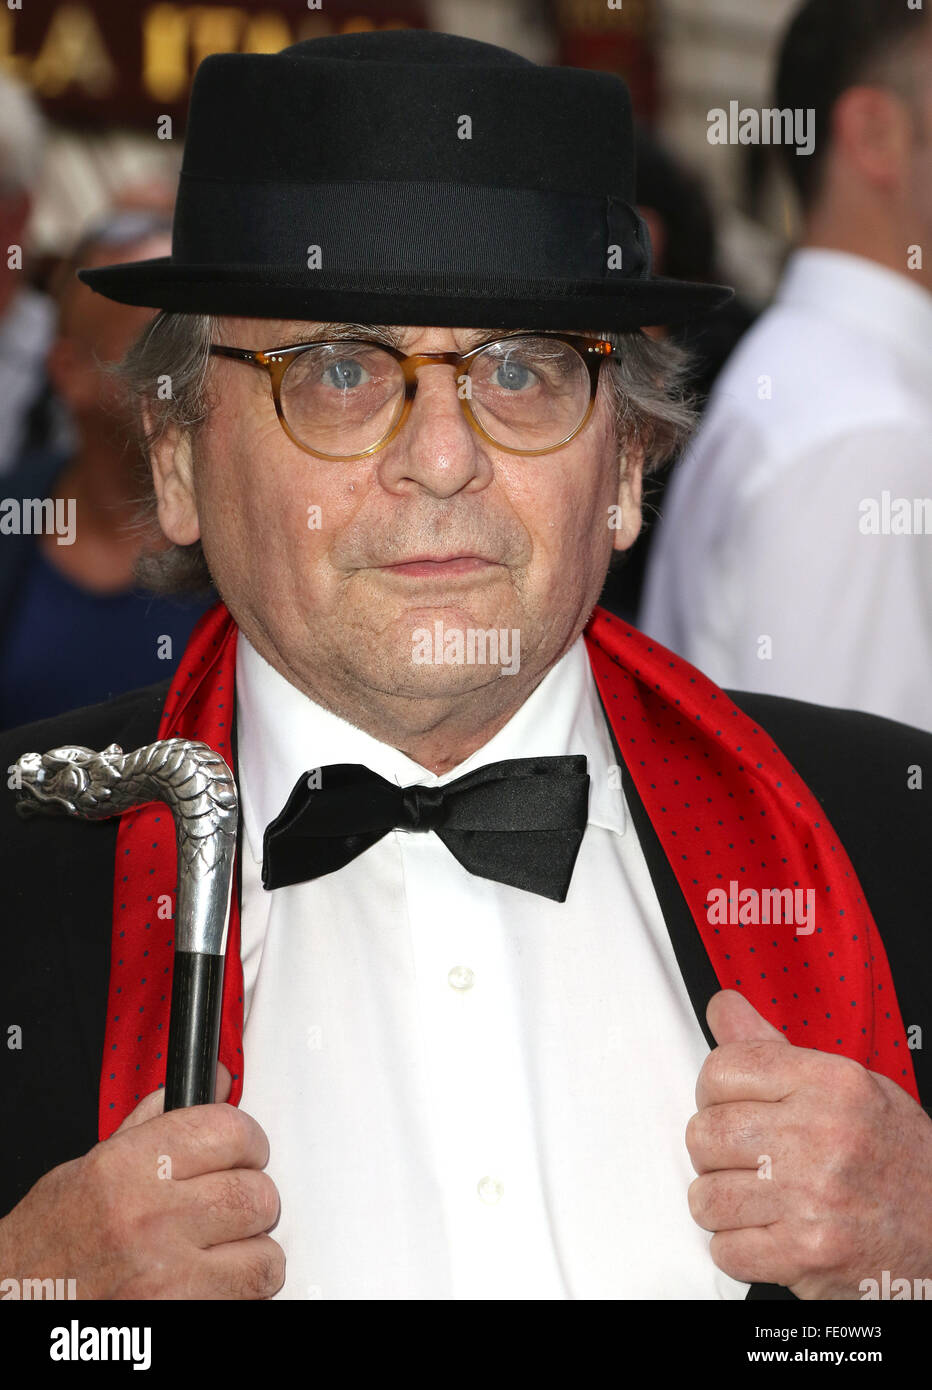 Jul 20, 2015 - London, England, UK - Sylvester McCoy attending Frank Sinatra: The Man and His Music Press Night, Stock Photo